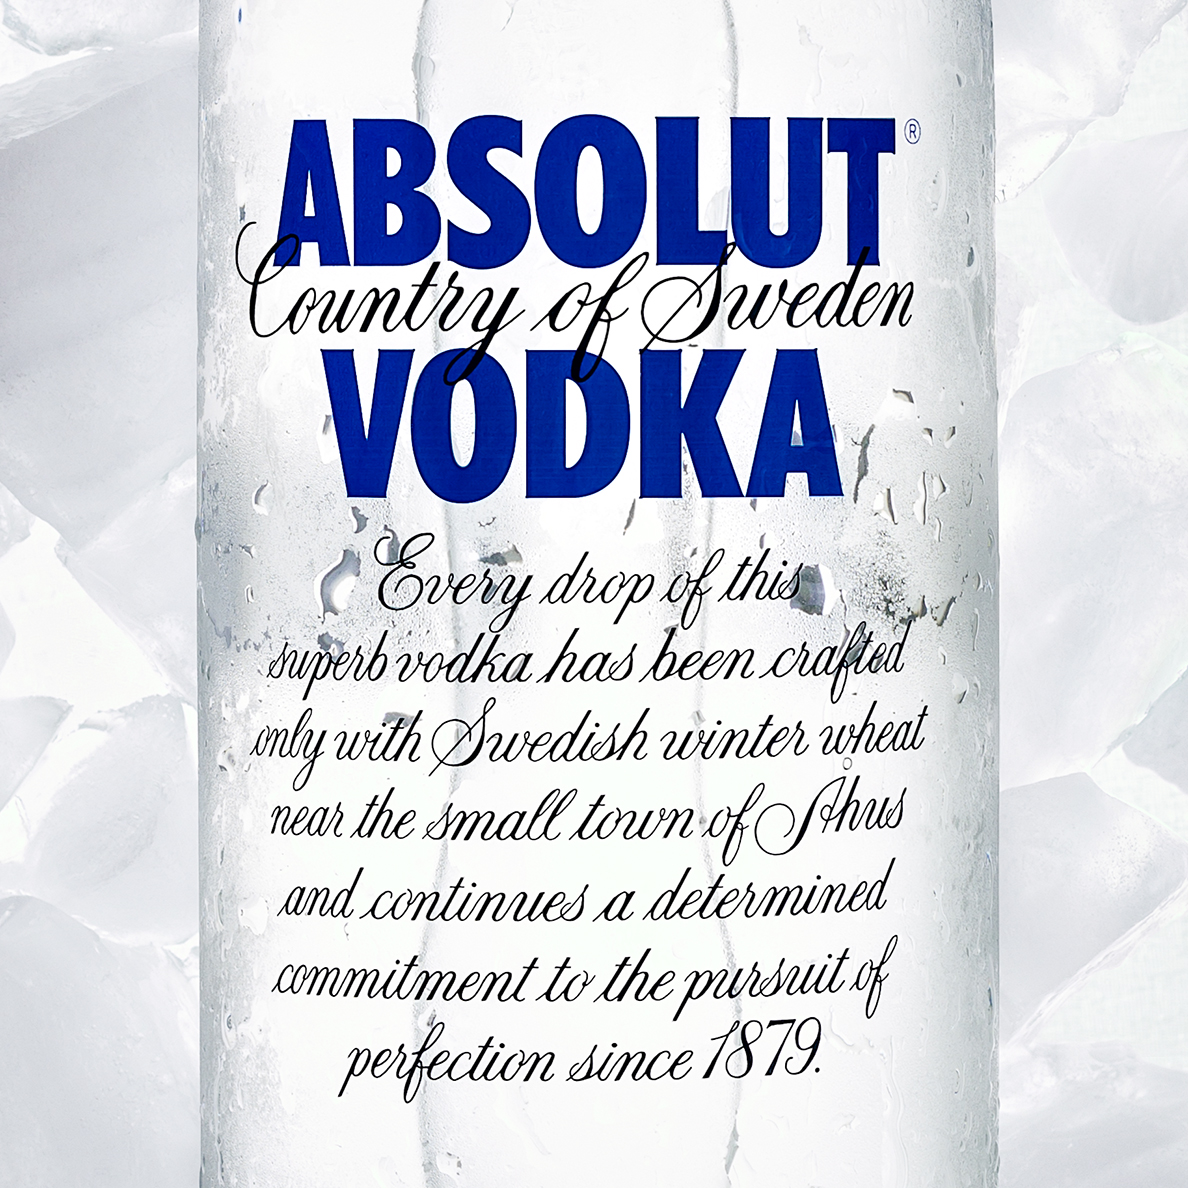 absolut-concept-advertorial-packshot-commercial-photoshoot-for-web-and-print-1-1